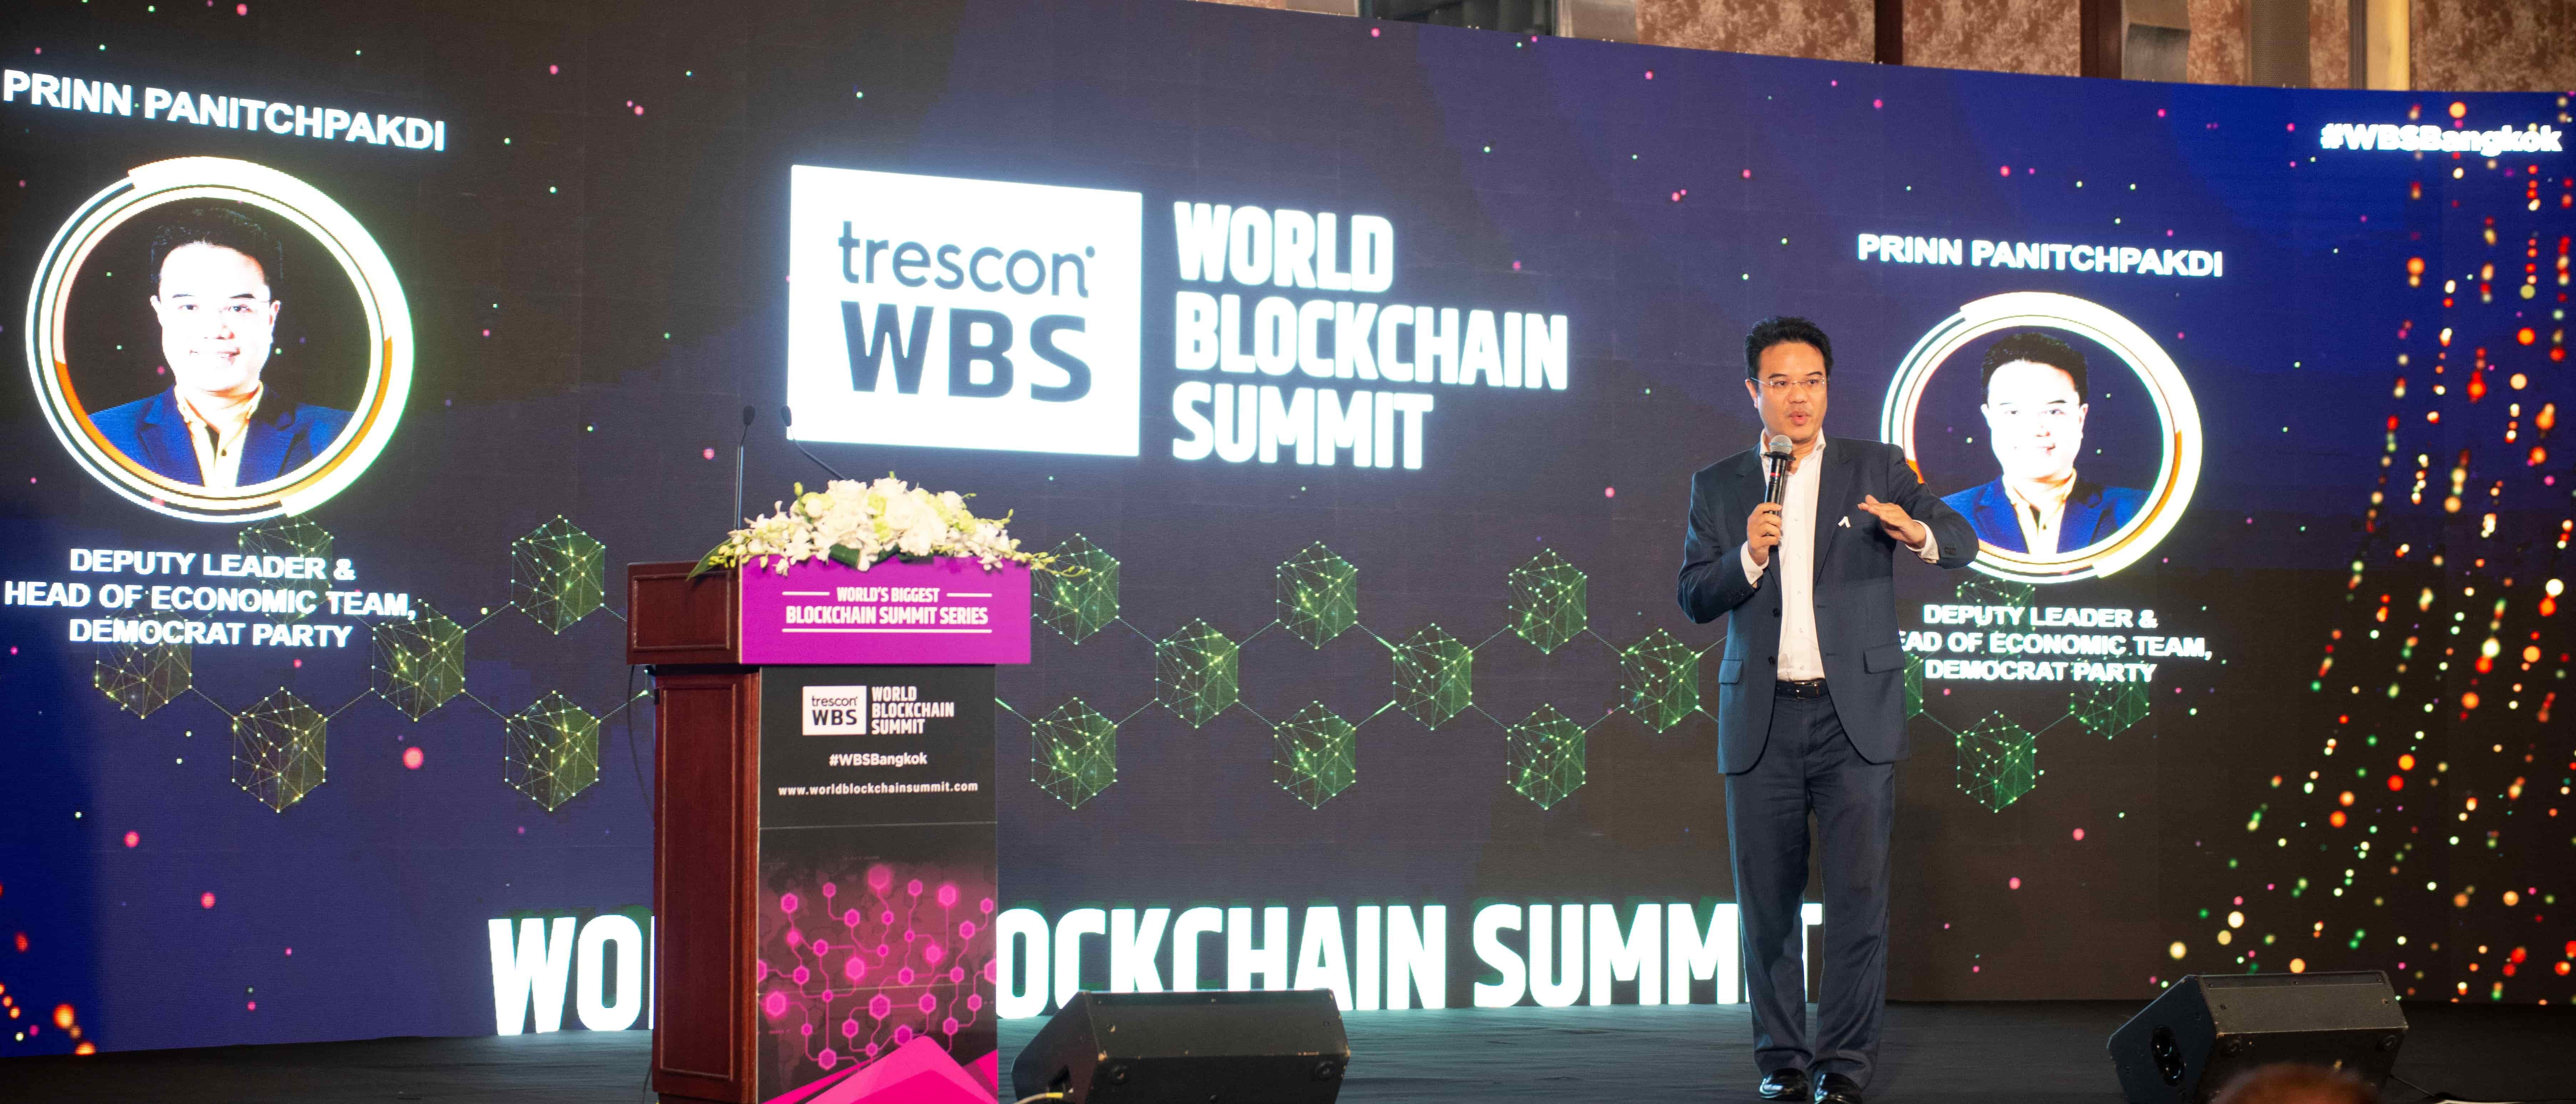 PR: Thailand Establishes its Vision of Becoming the Next Blockchain Force at Trescon's World Blockchain Summit